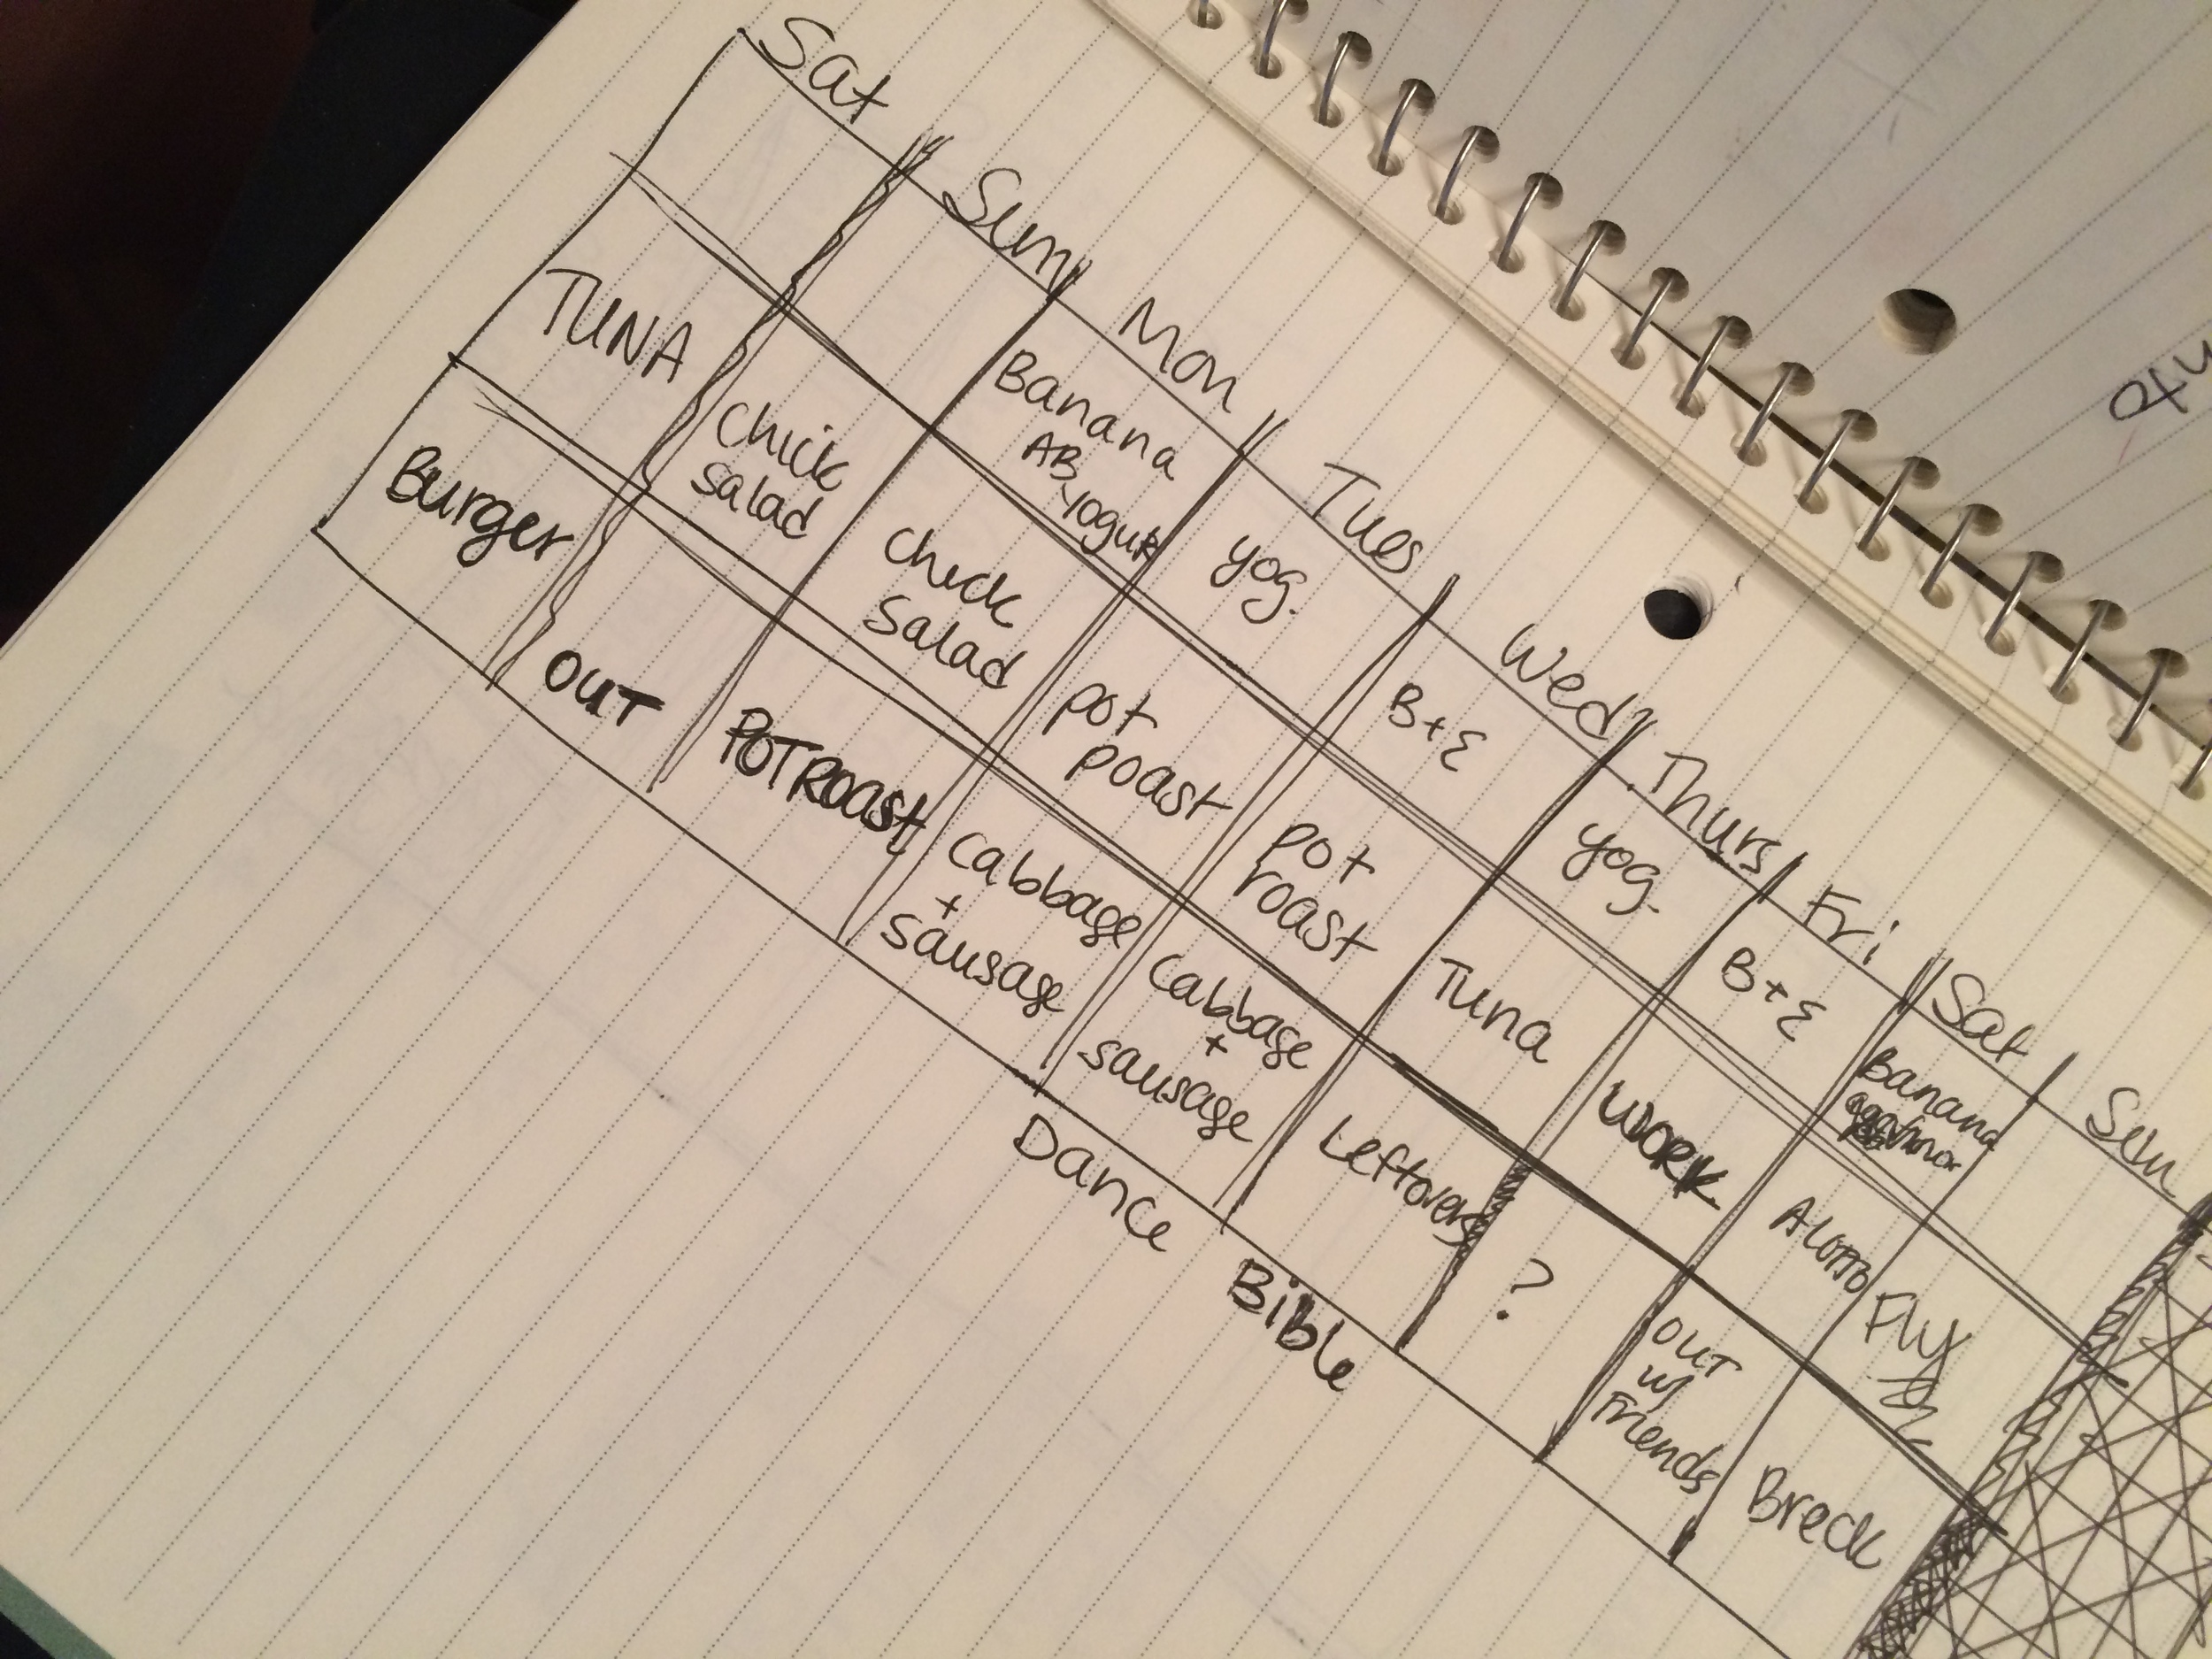 simple grid - no workouts and full meals not listed